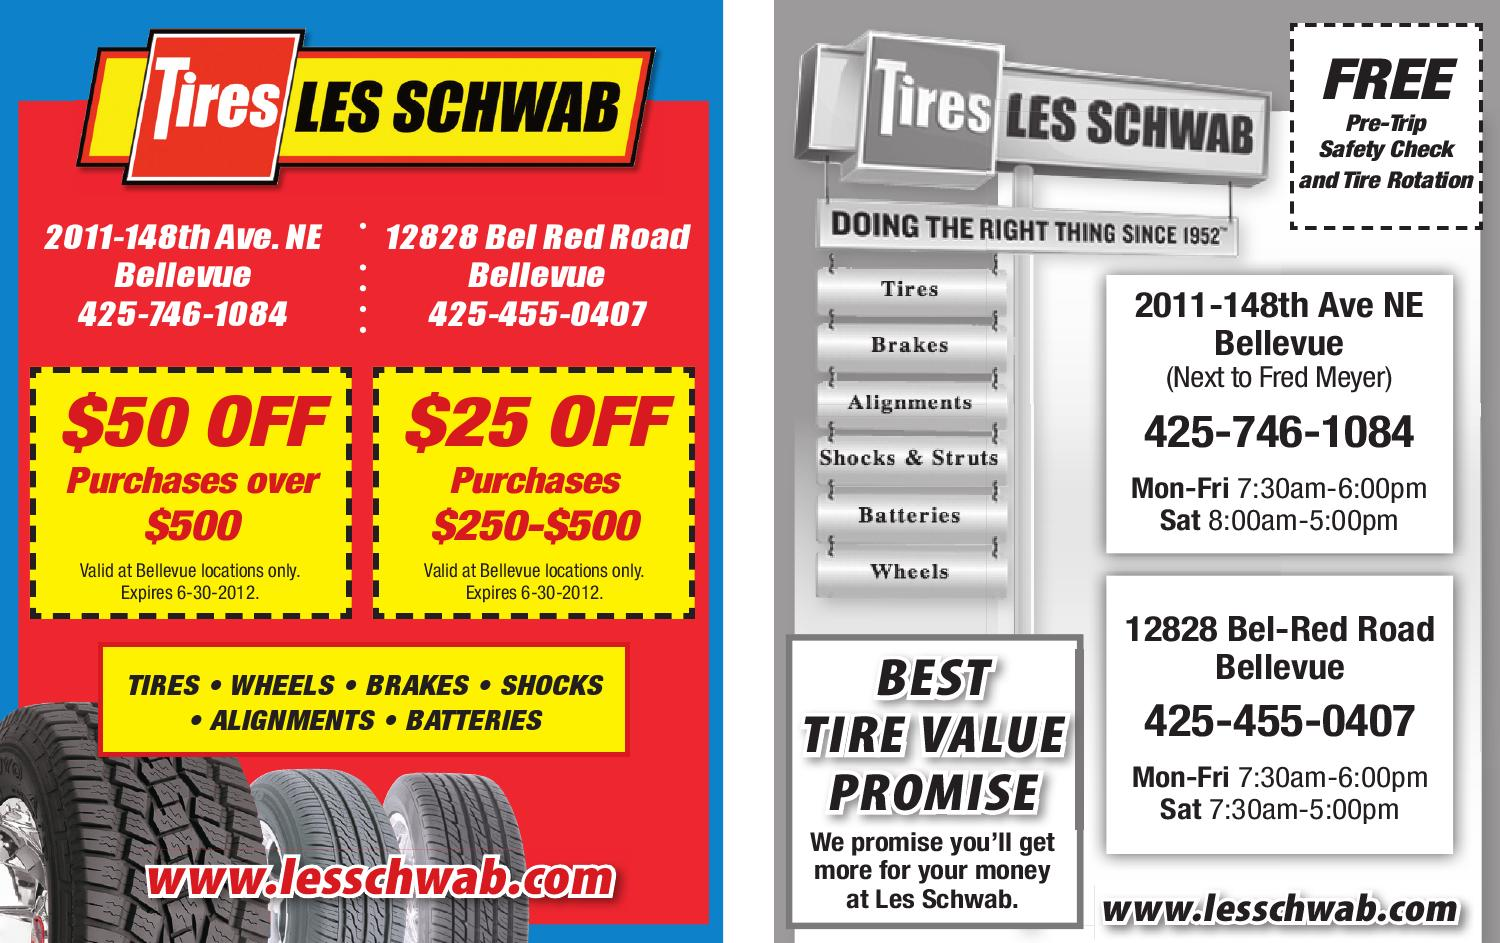 Tire Rotation Coupon >> Coupons - Les Schwab JUNE 2012 Coupon by Sound Publishing - Issuu